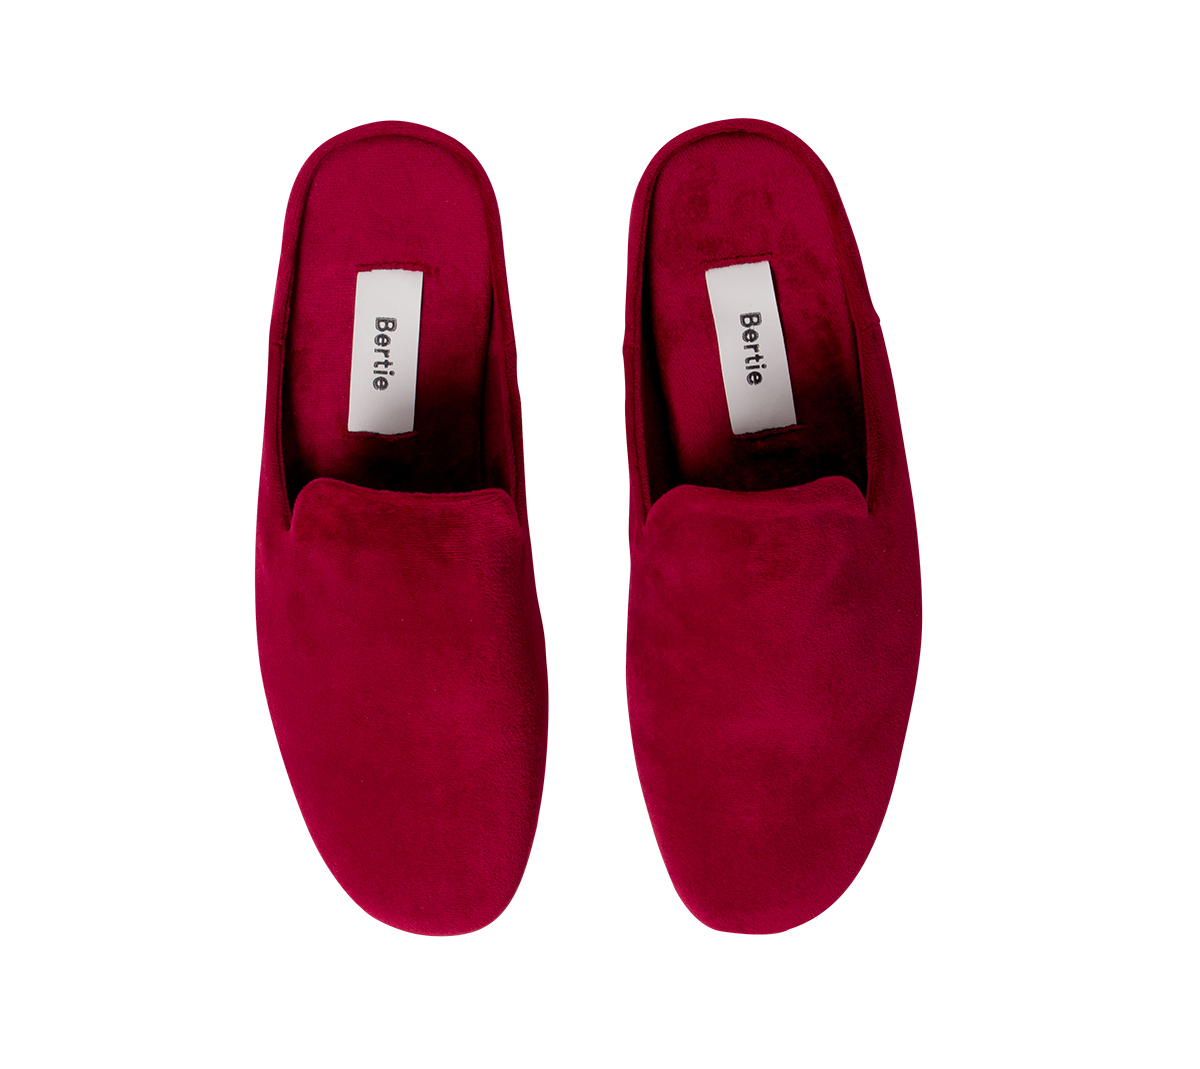 Bertie slippers